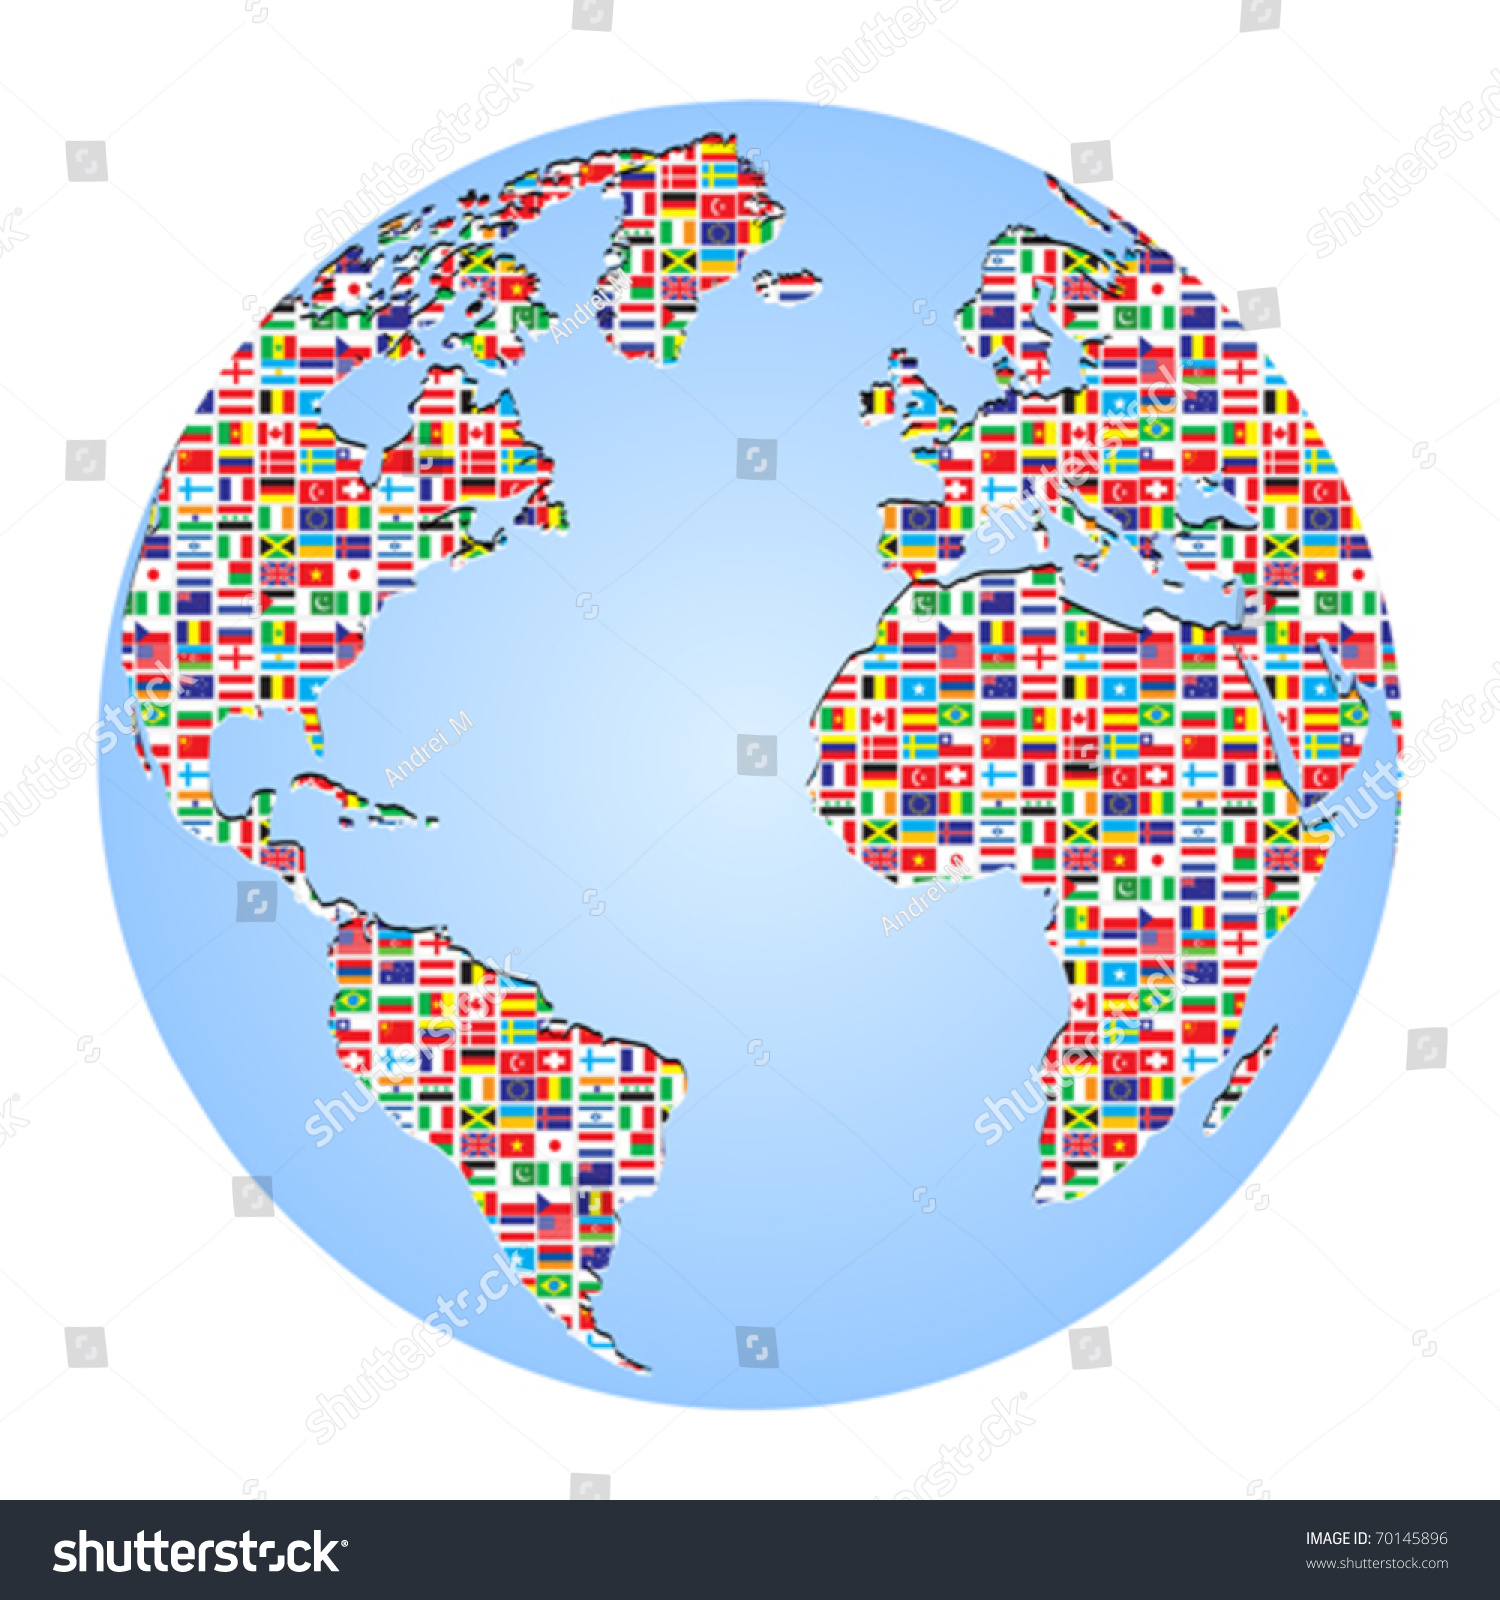 World map country flags on vectores en stock 70145896 shutterstock world map with country flags on it gumiabroncs Images